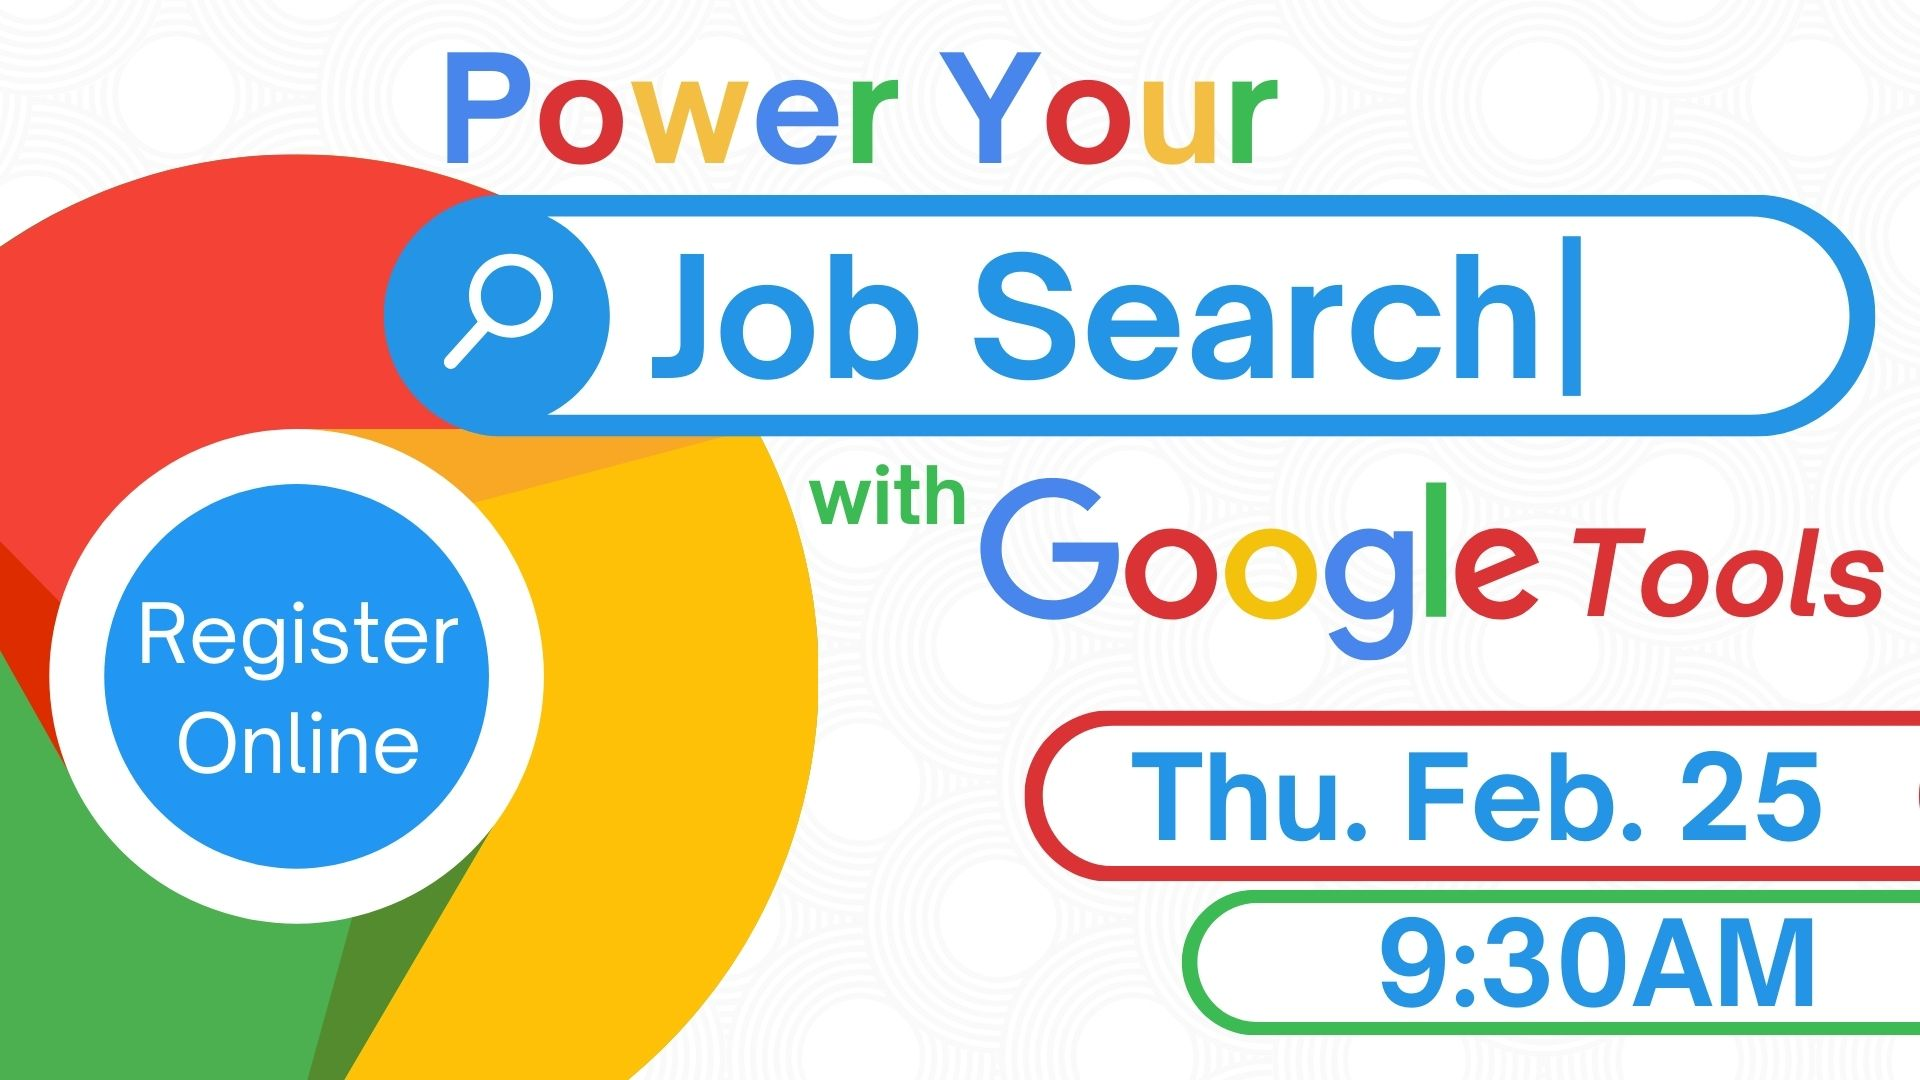 Grow with Google - Power Your Job Search with Google Tools